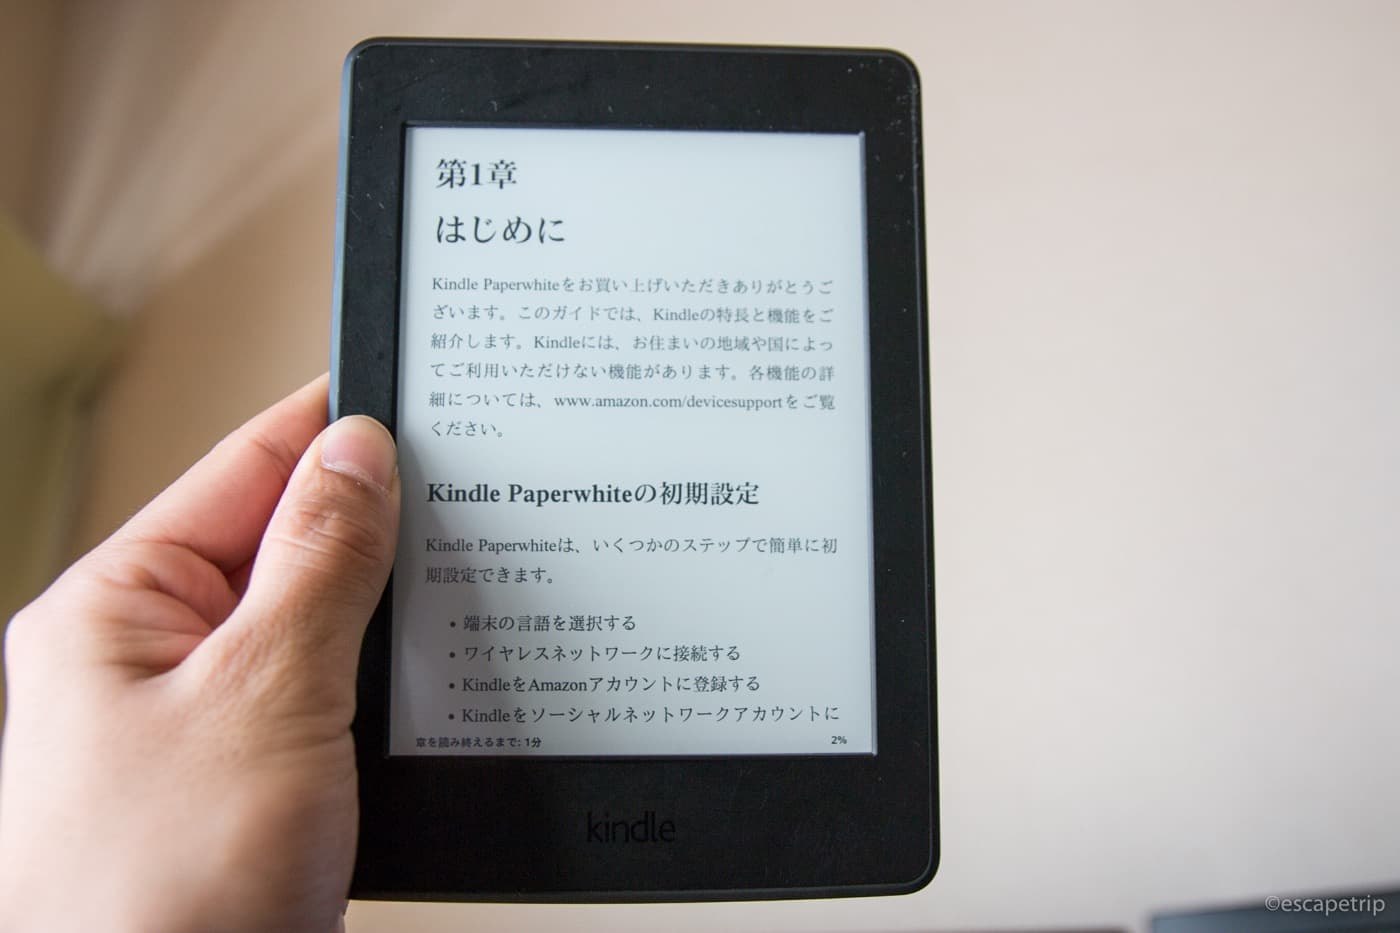 Kindle Paperwhiteを持ったところ